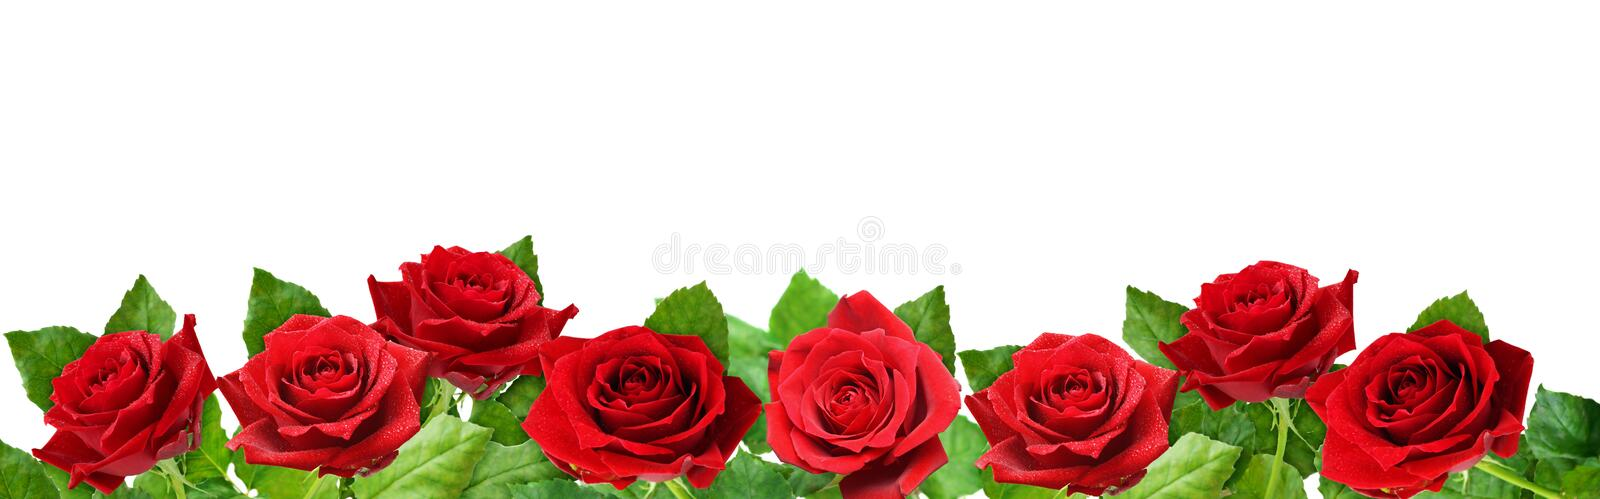 Red rose flowers border royalty free stock photo